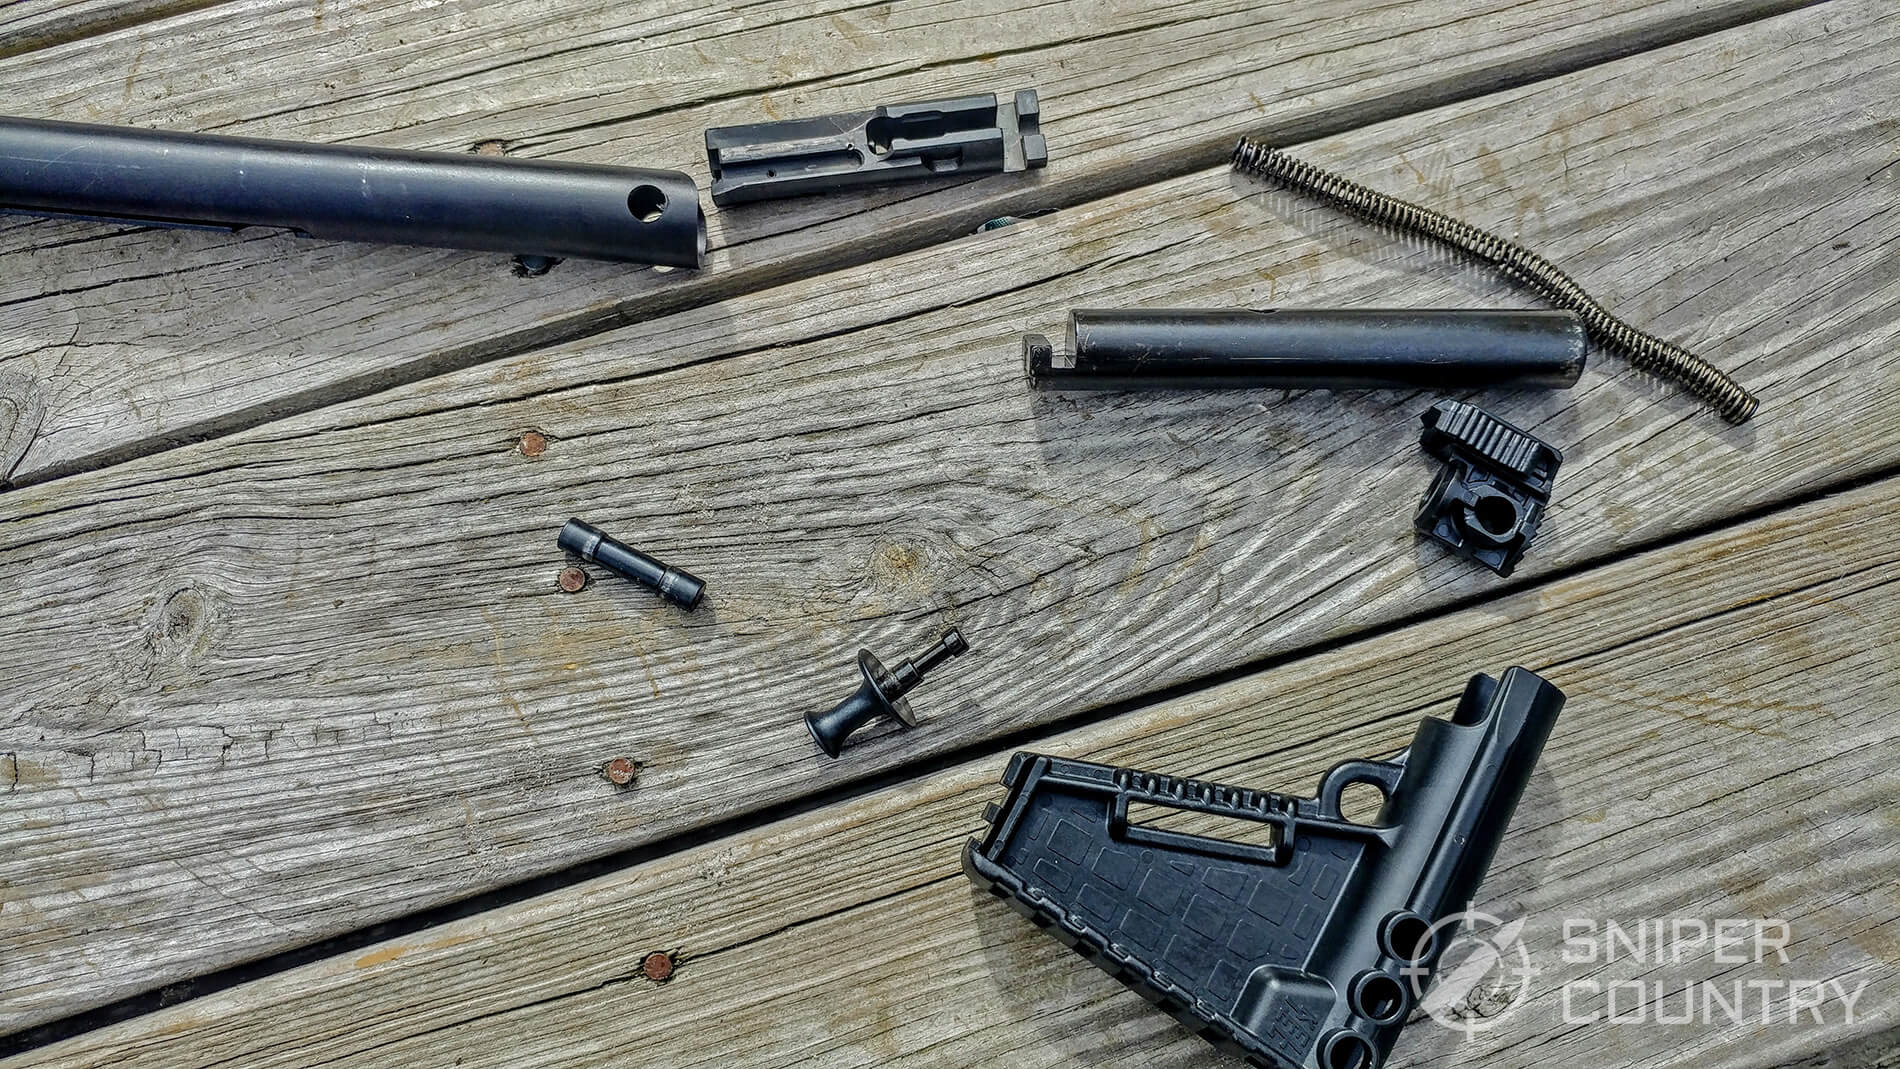 Review: Kel-Tec Sub 2000 | Sniper Country